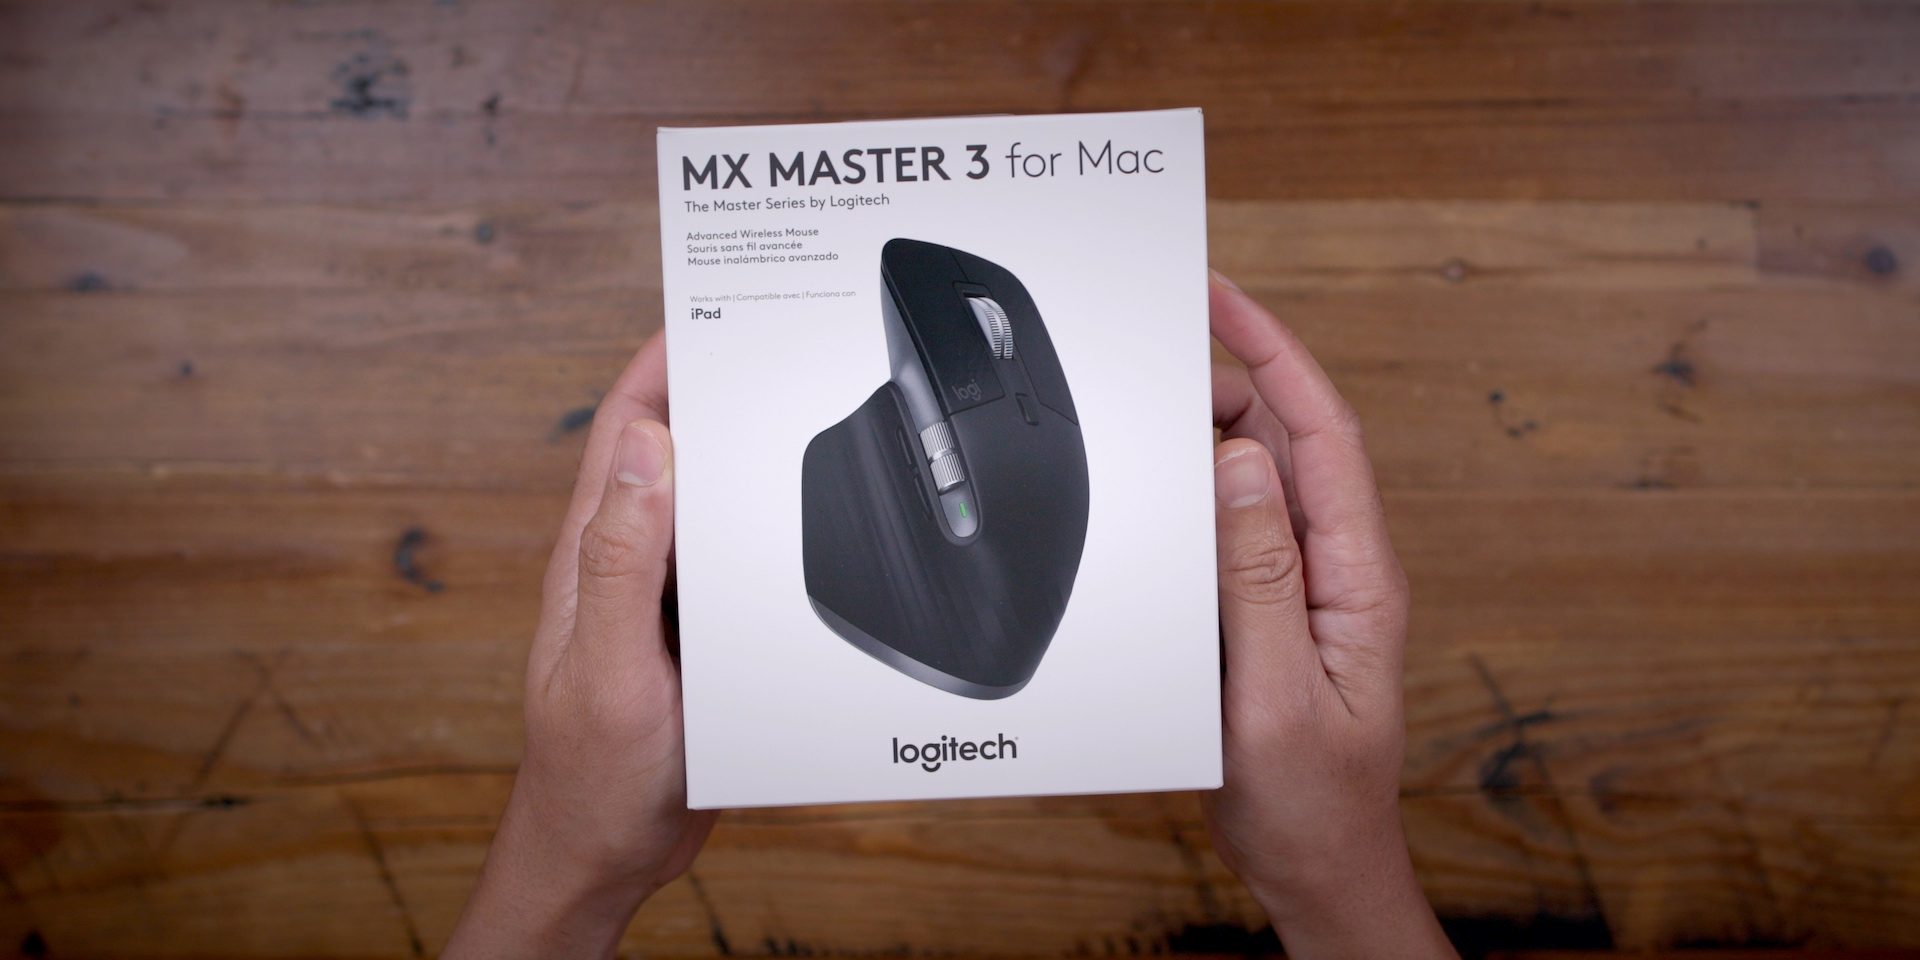 Chuột Logitech MX Master 3 for Mac